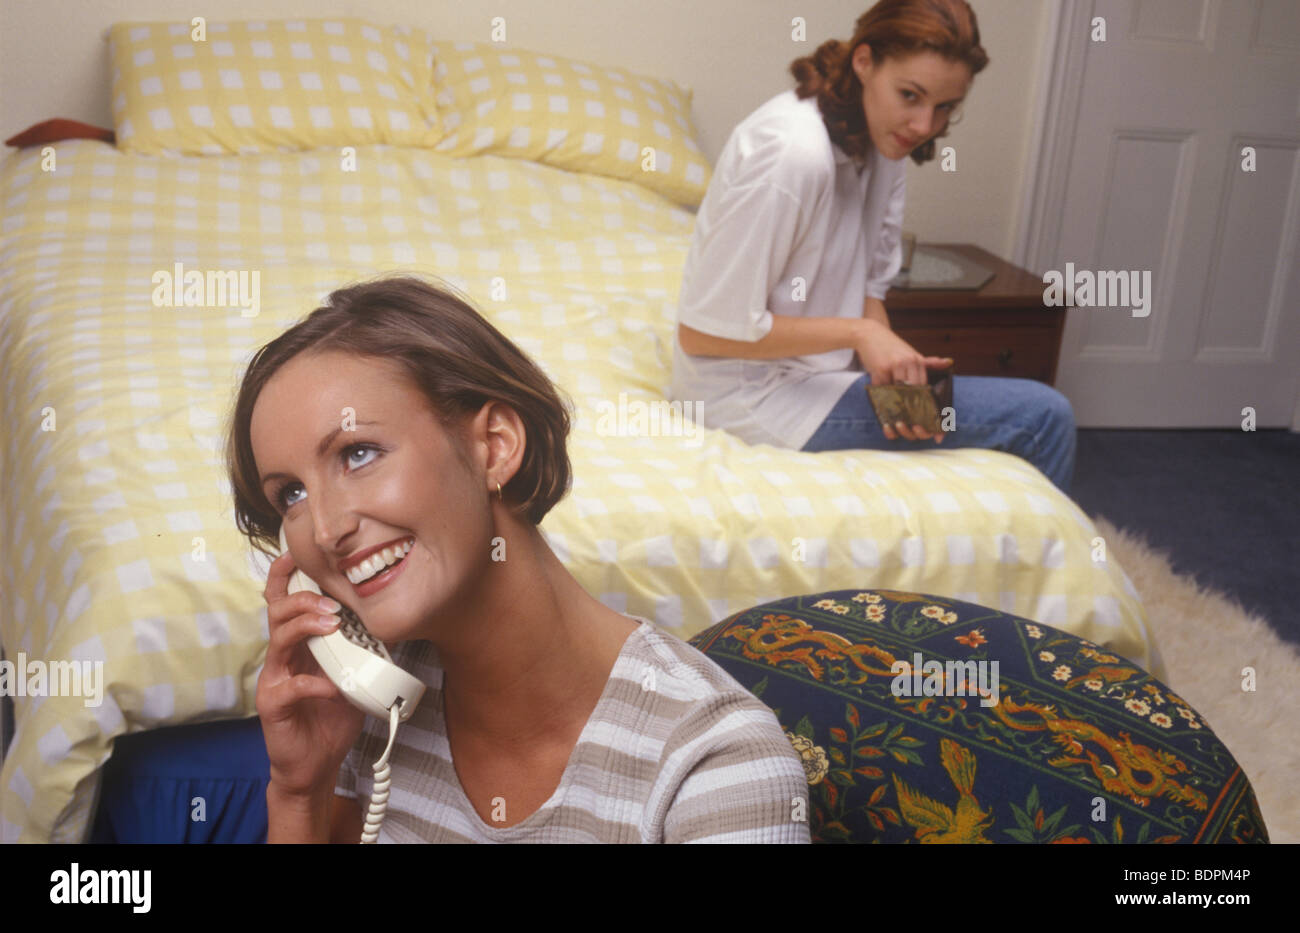 woman taking money from a friend's purse while her friend is on the phone - Stock Image